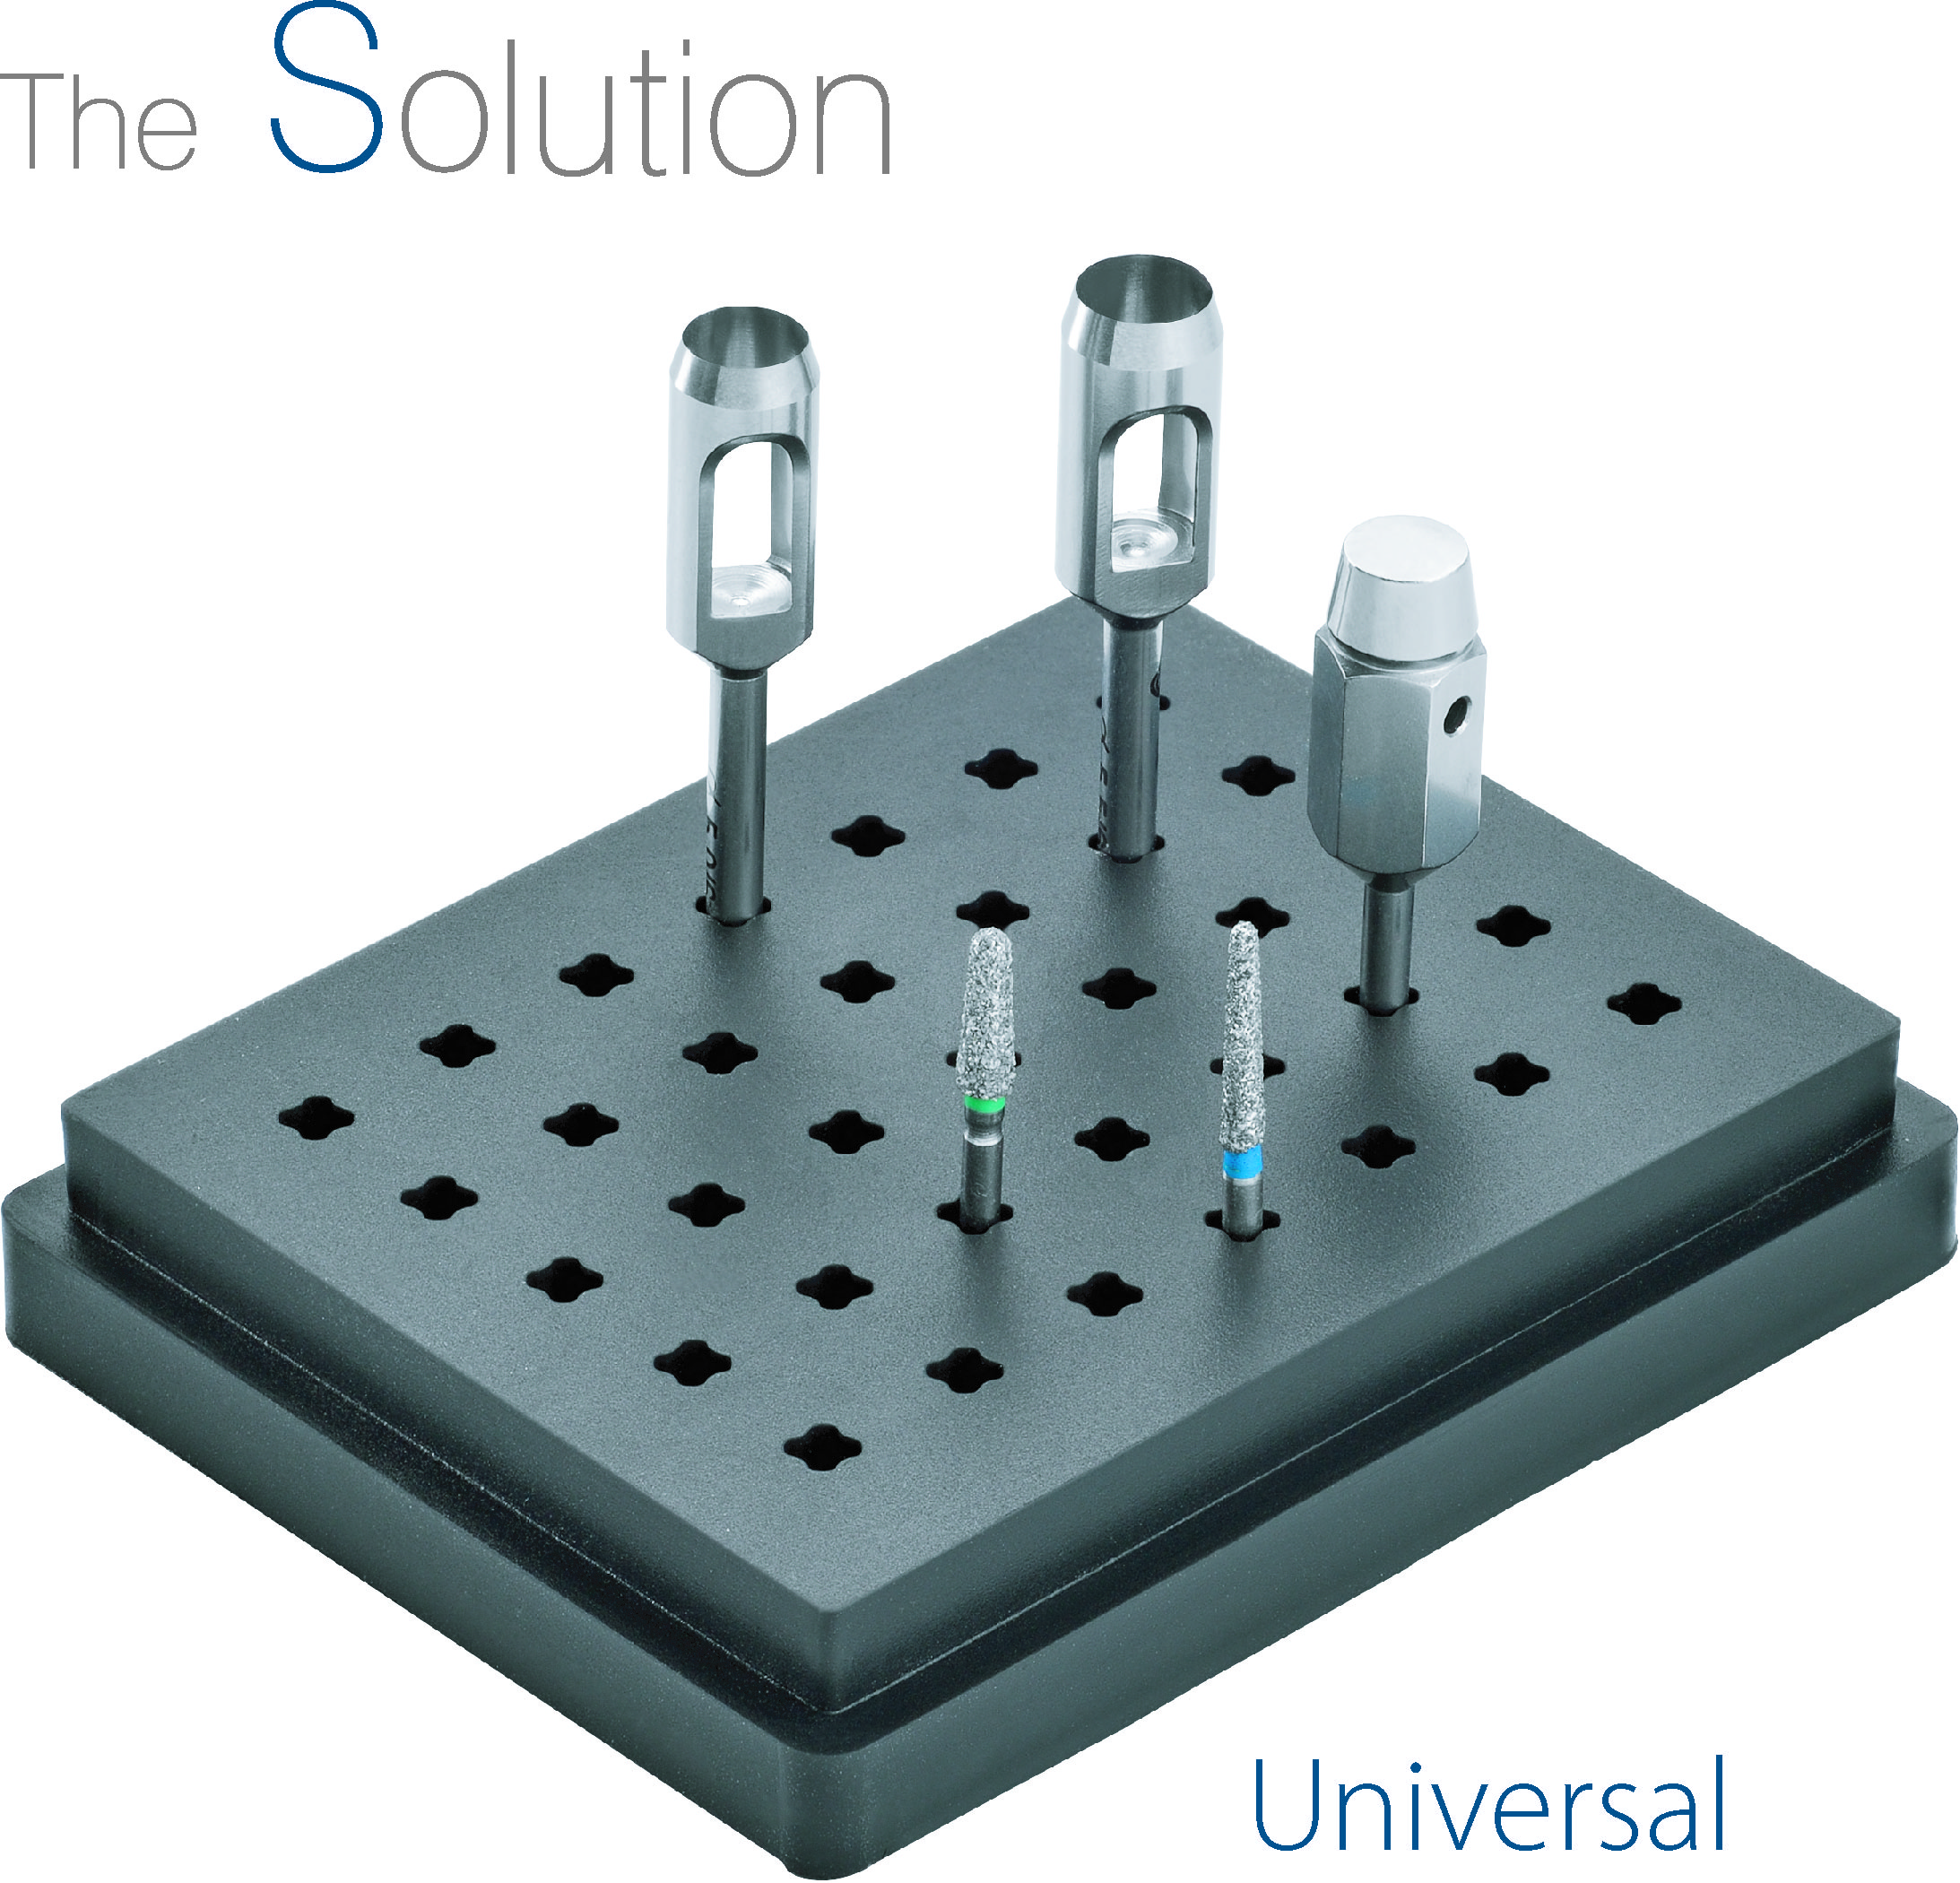 Universal Silicon holders